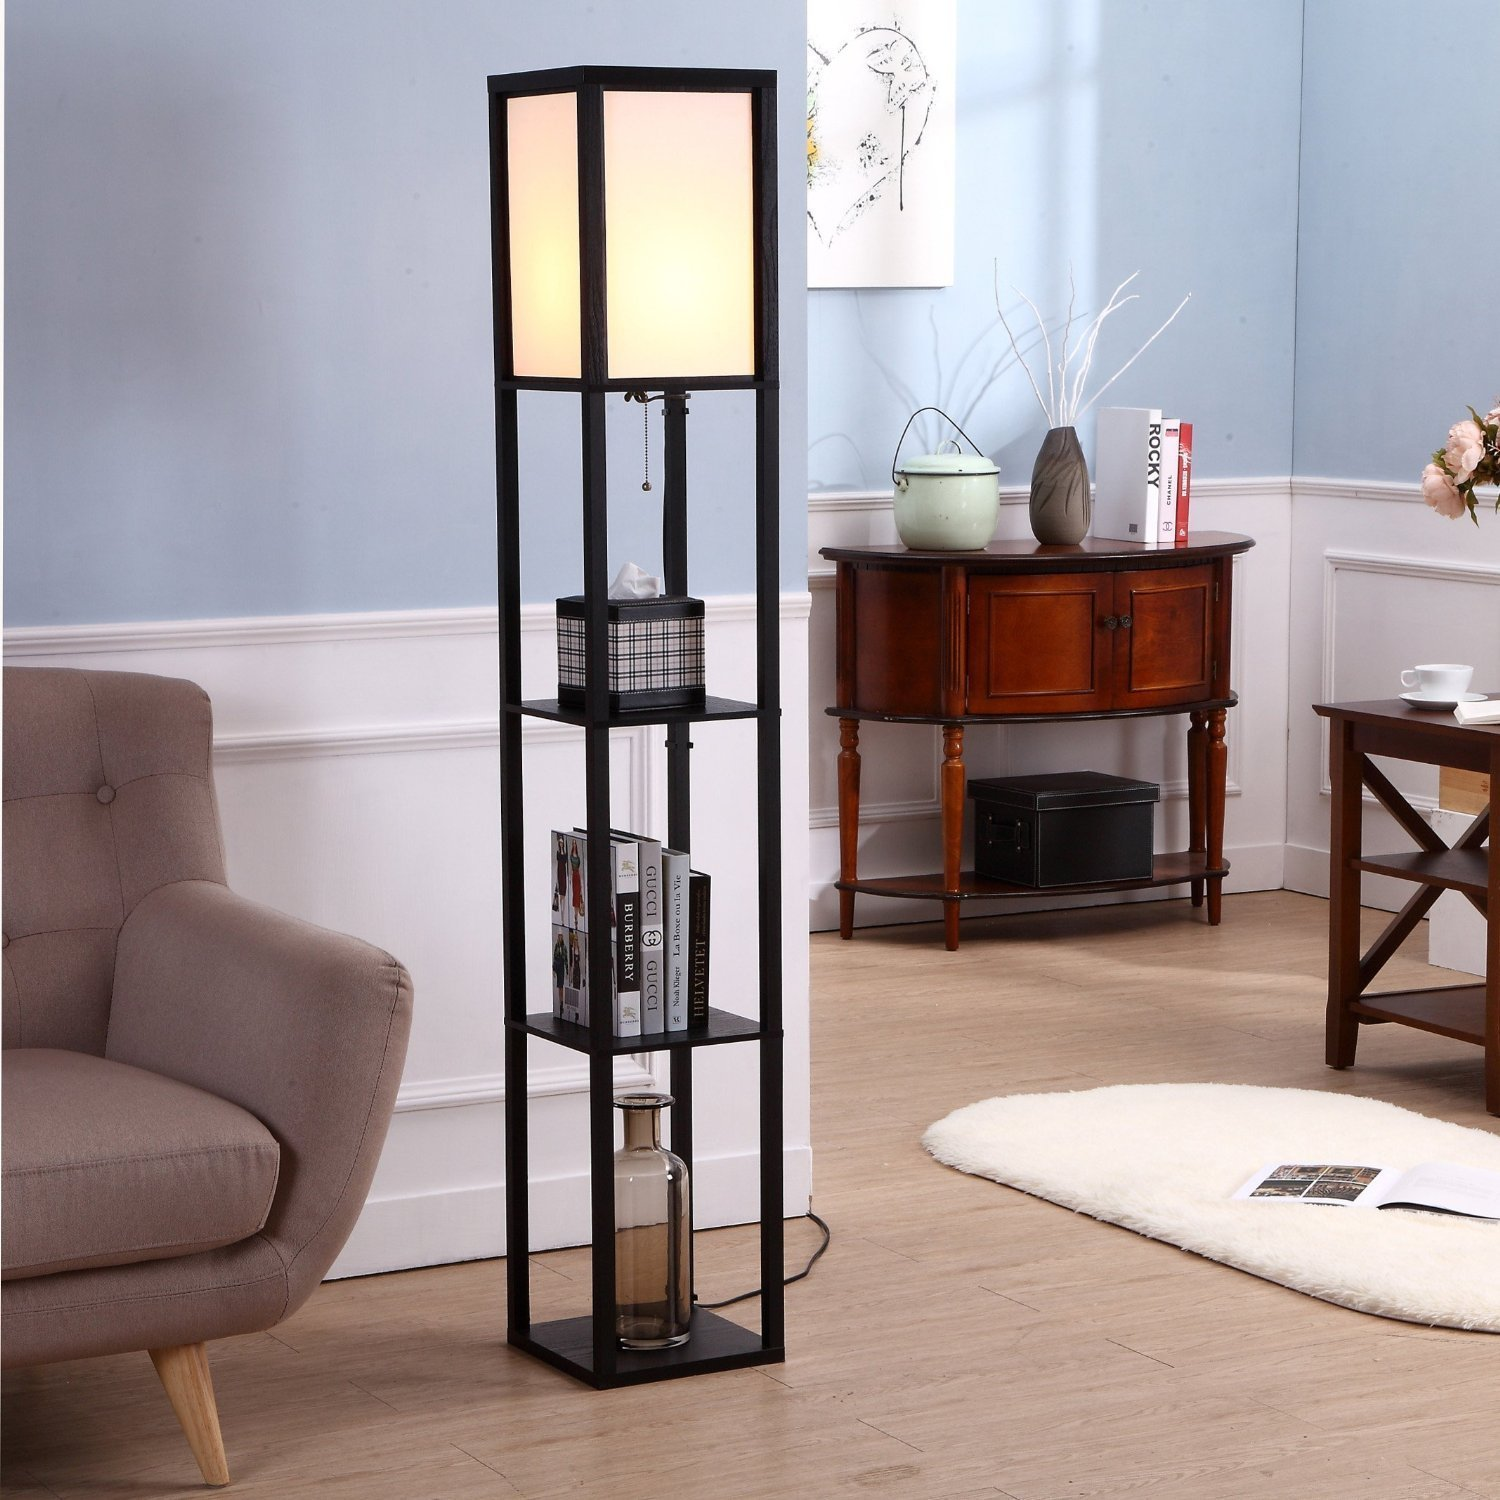 Mood Lighting Living Room The Best Table Lamp For Your Living Room A Buyers Guide Best